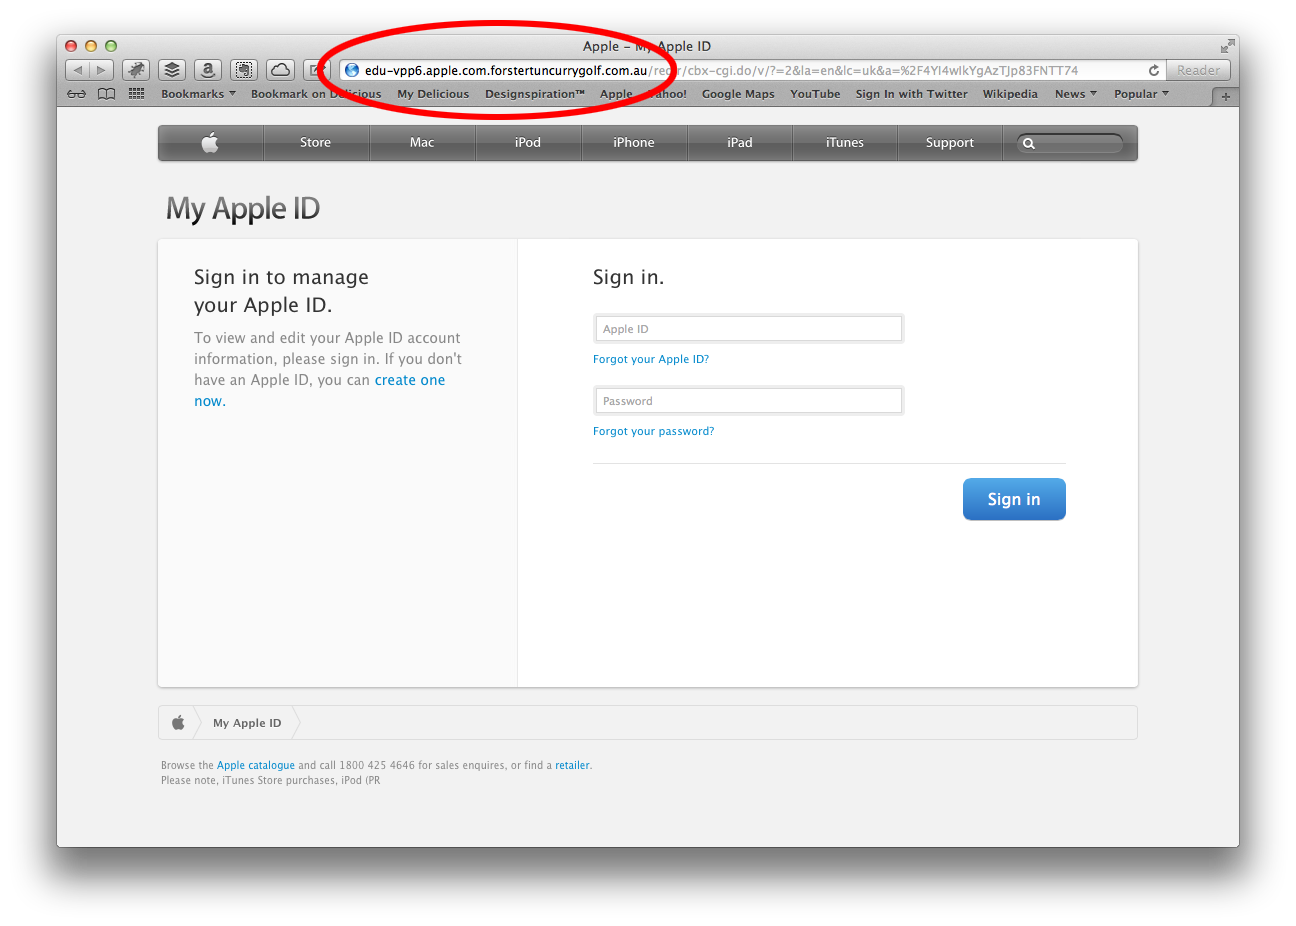 apple-phish-website-0213-02-copy.png